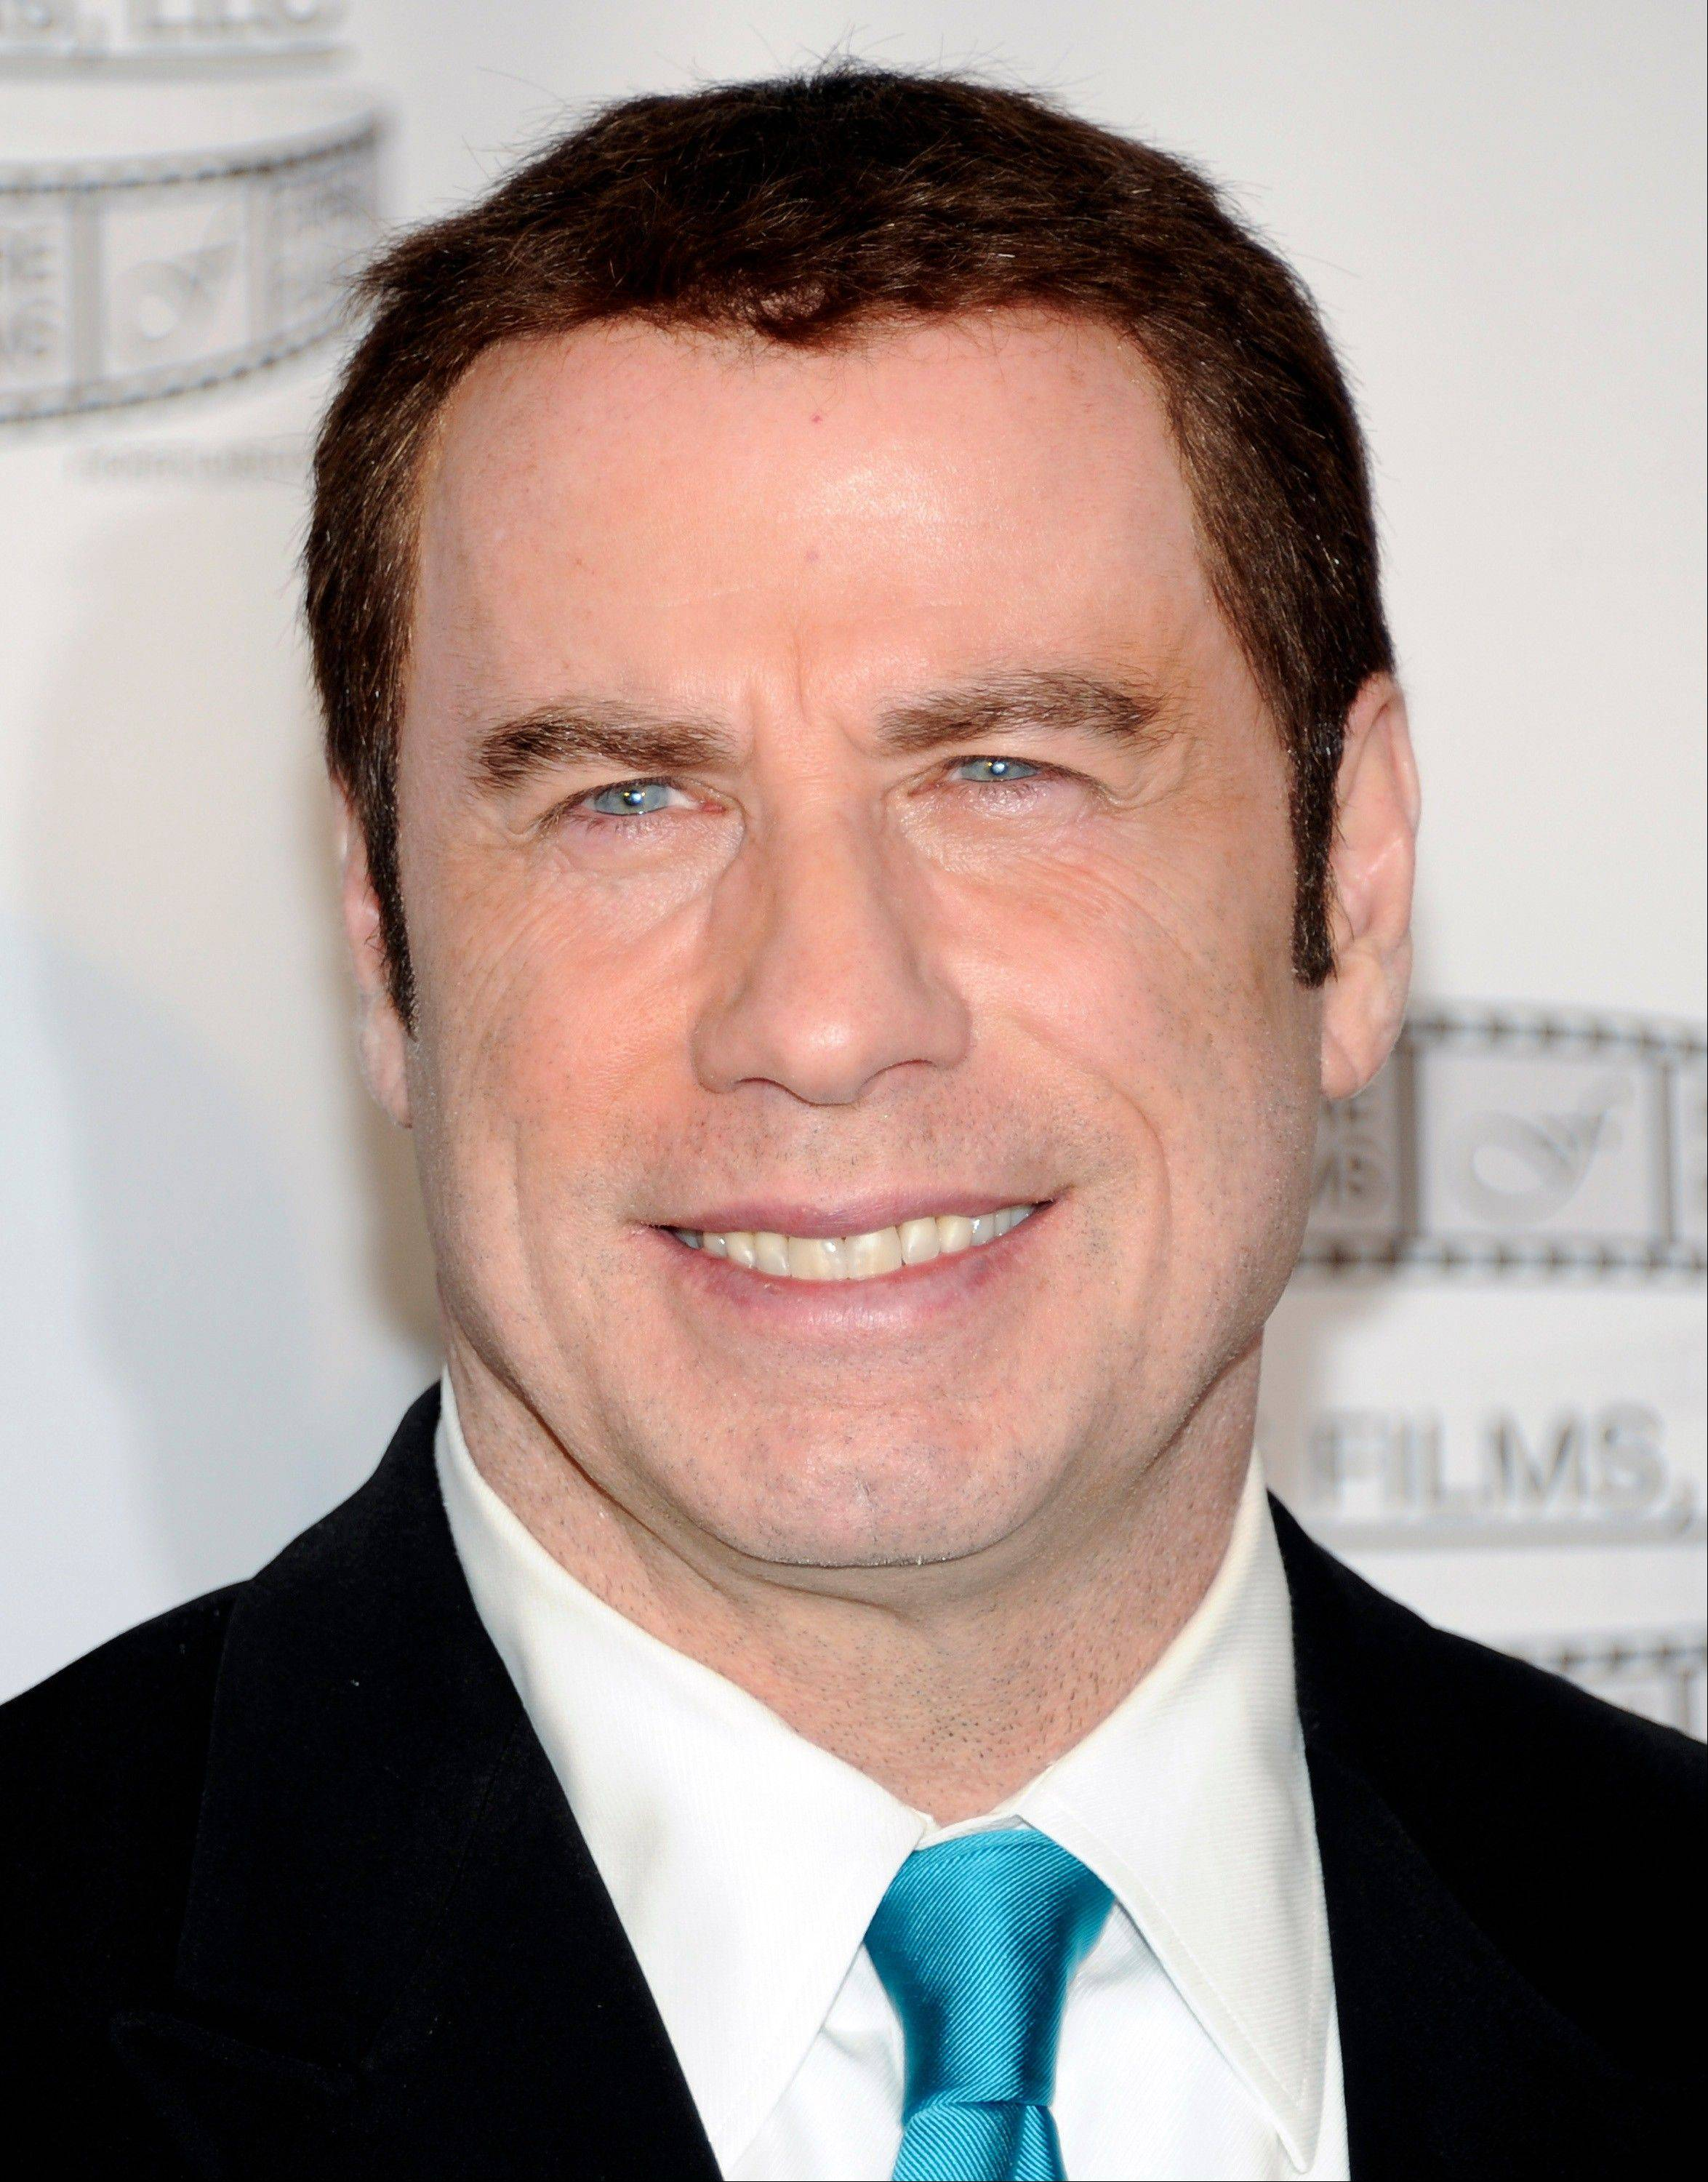 Two years after his last film, actor John Travolta returns to the big screen amid a flurry of bad press about his personal life.